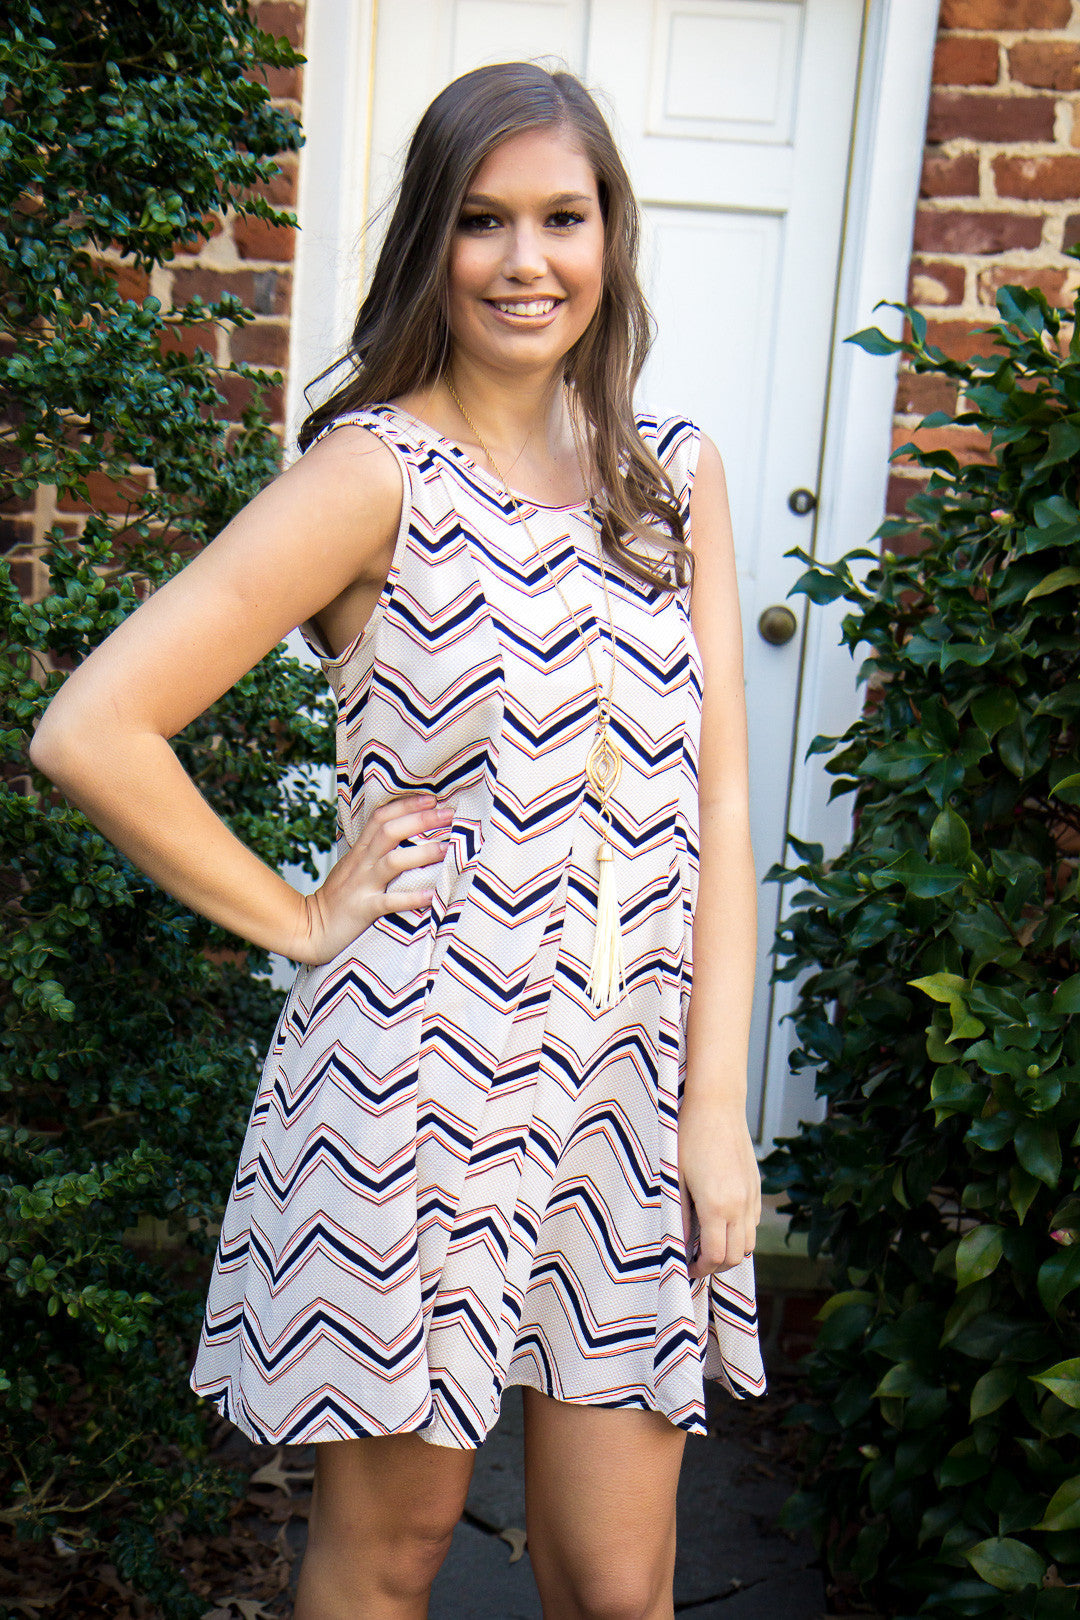 Zig Zag Dreams Dress